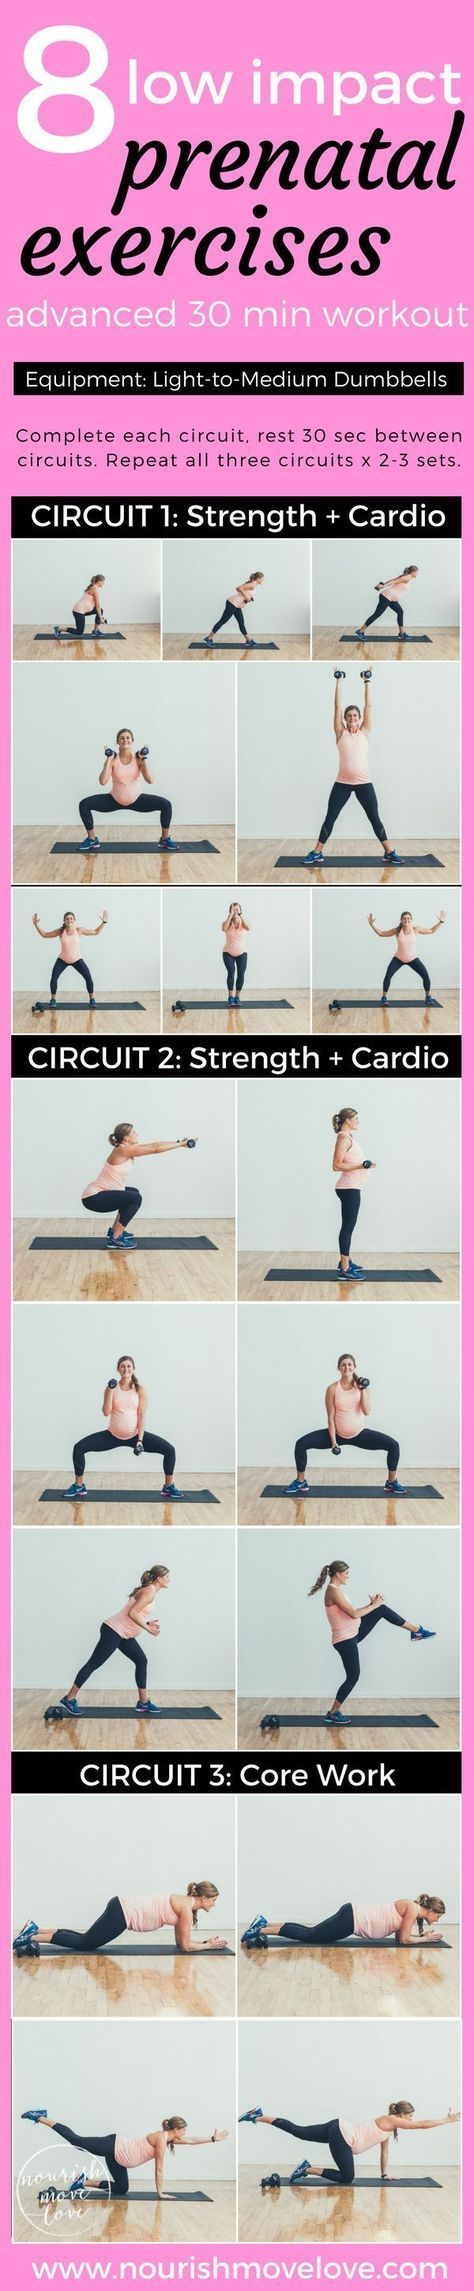 Low impact strength and cardio workout for beginners, pregnancy, post partum, na…